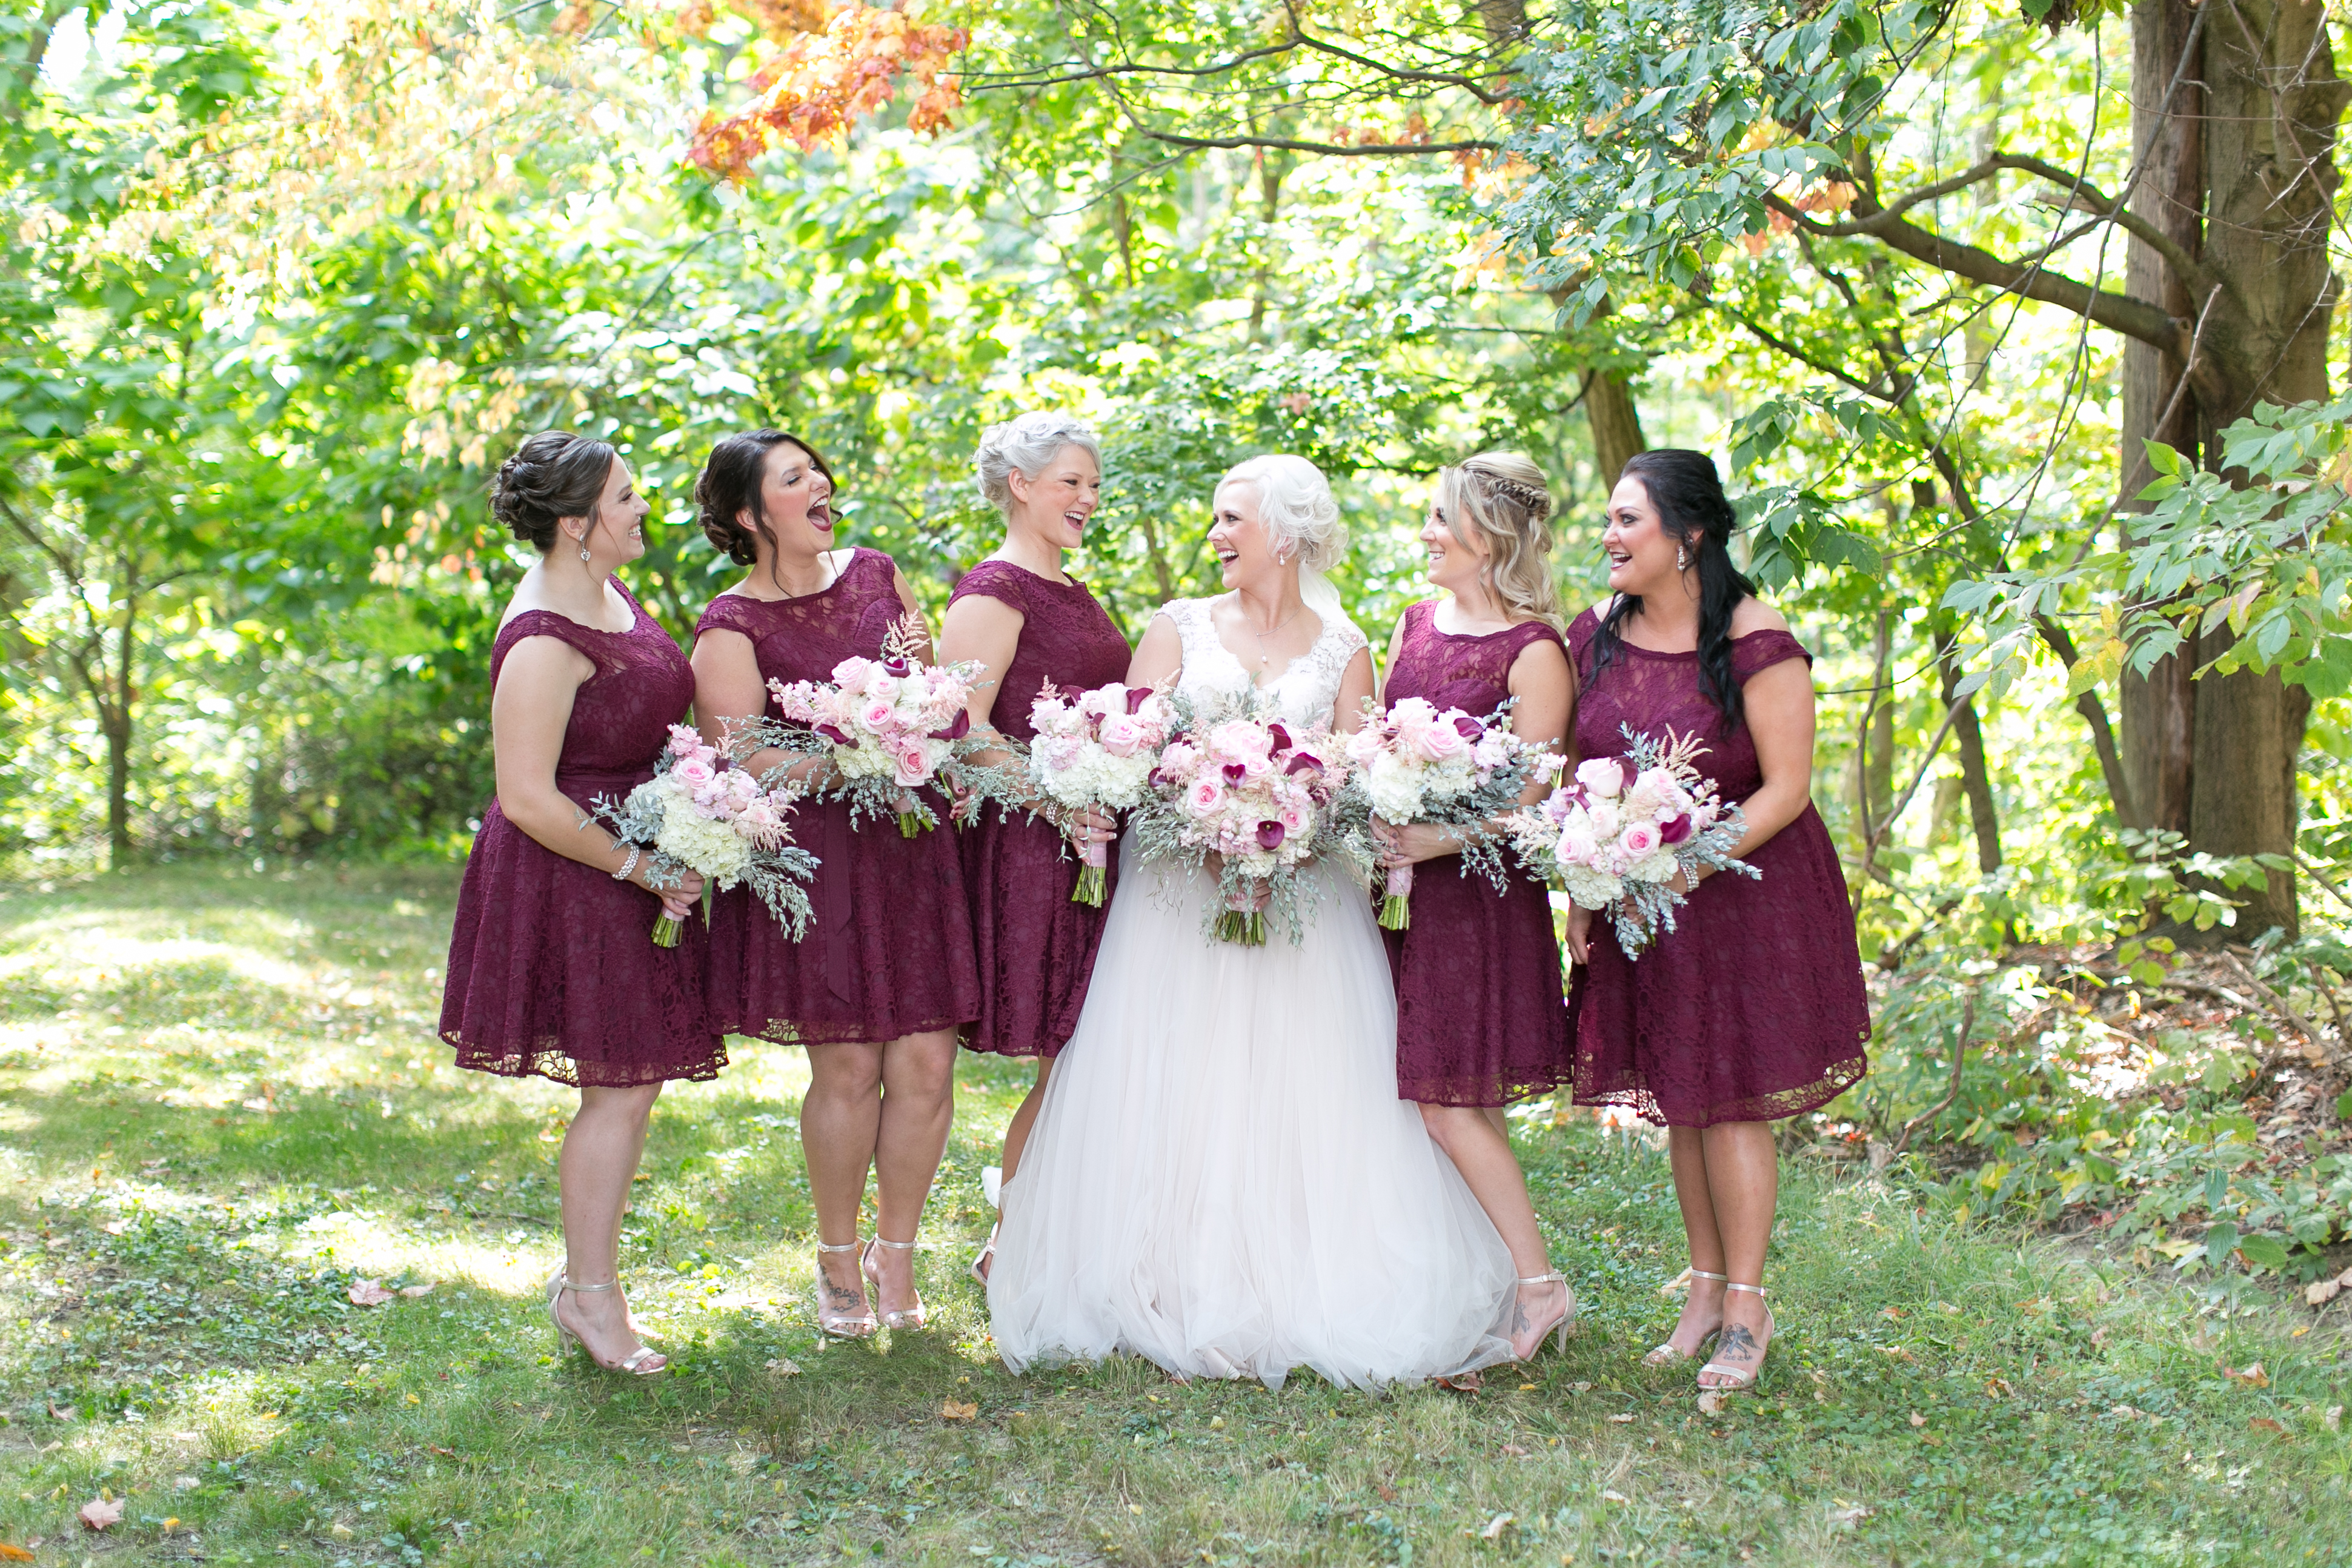 A perfect fall wedding; bordeaux lace bridesmaid dresses